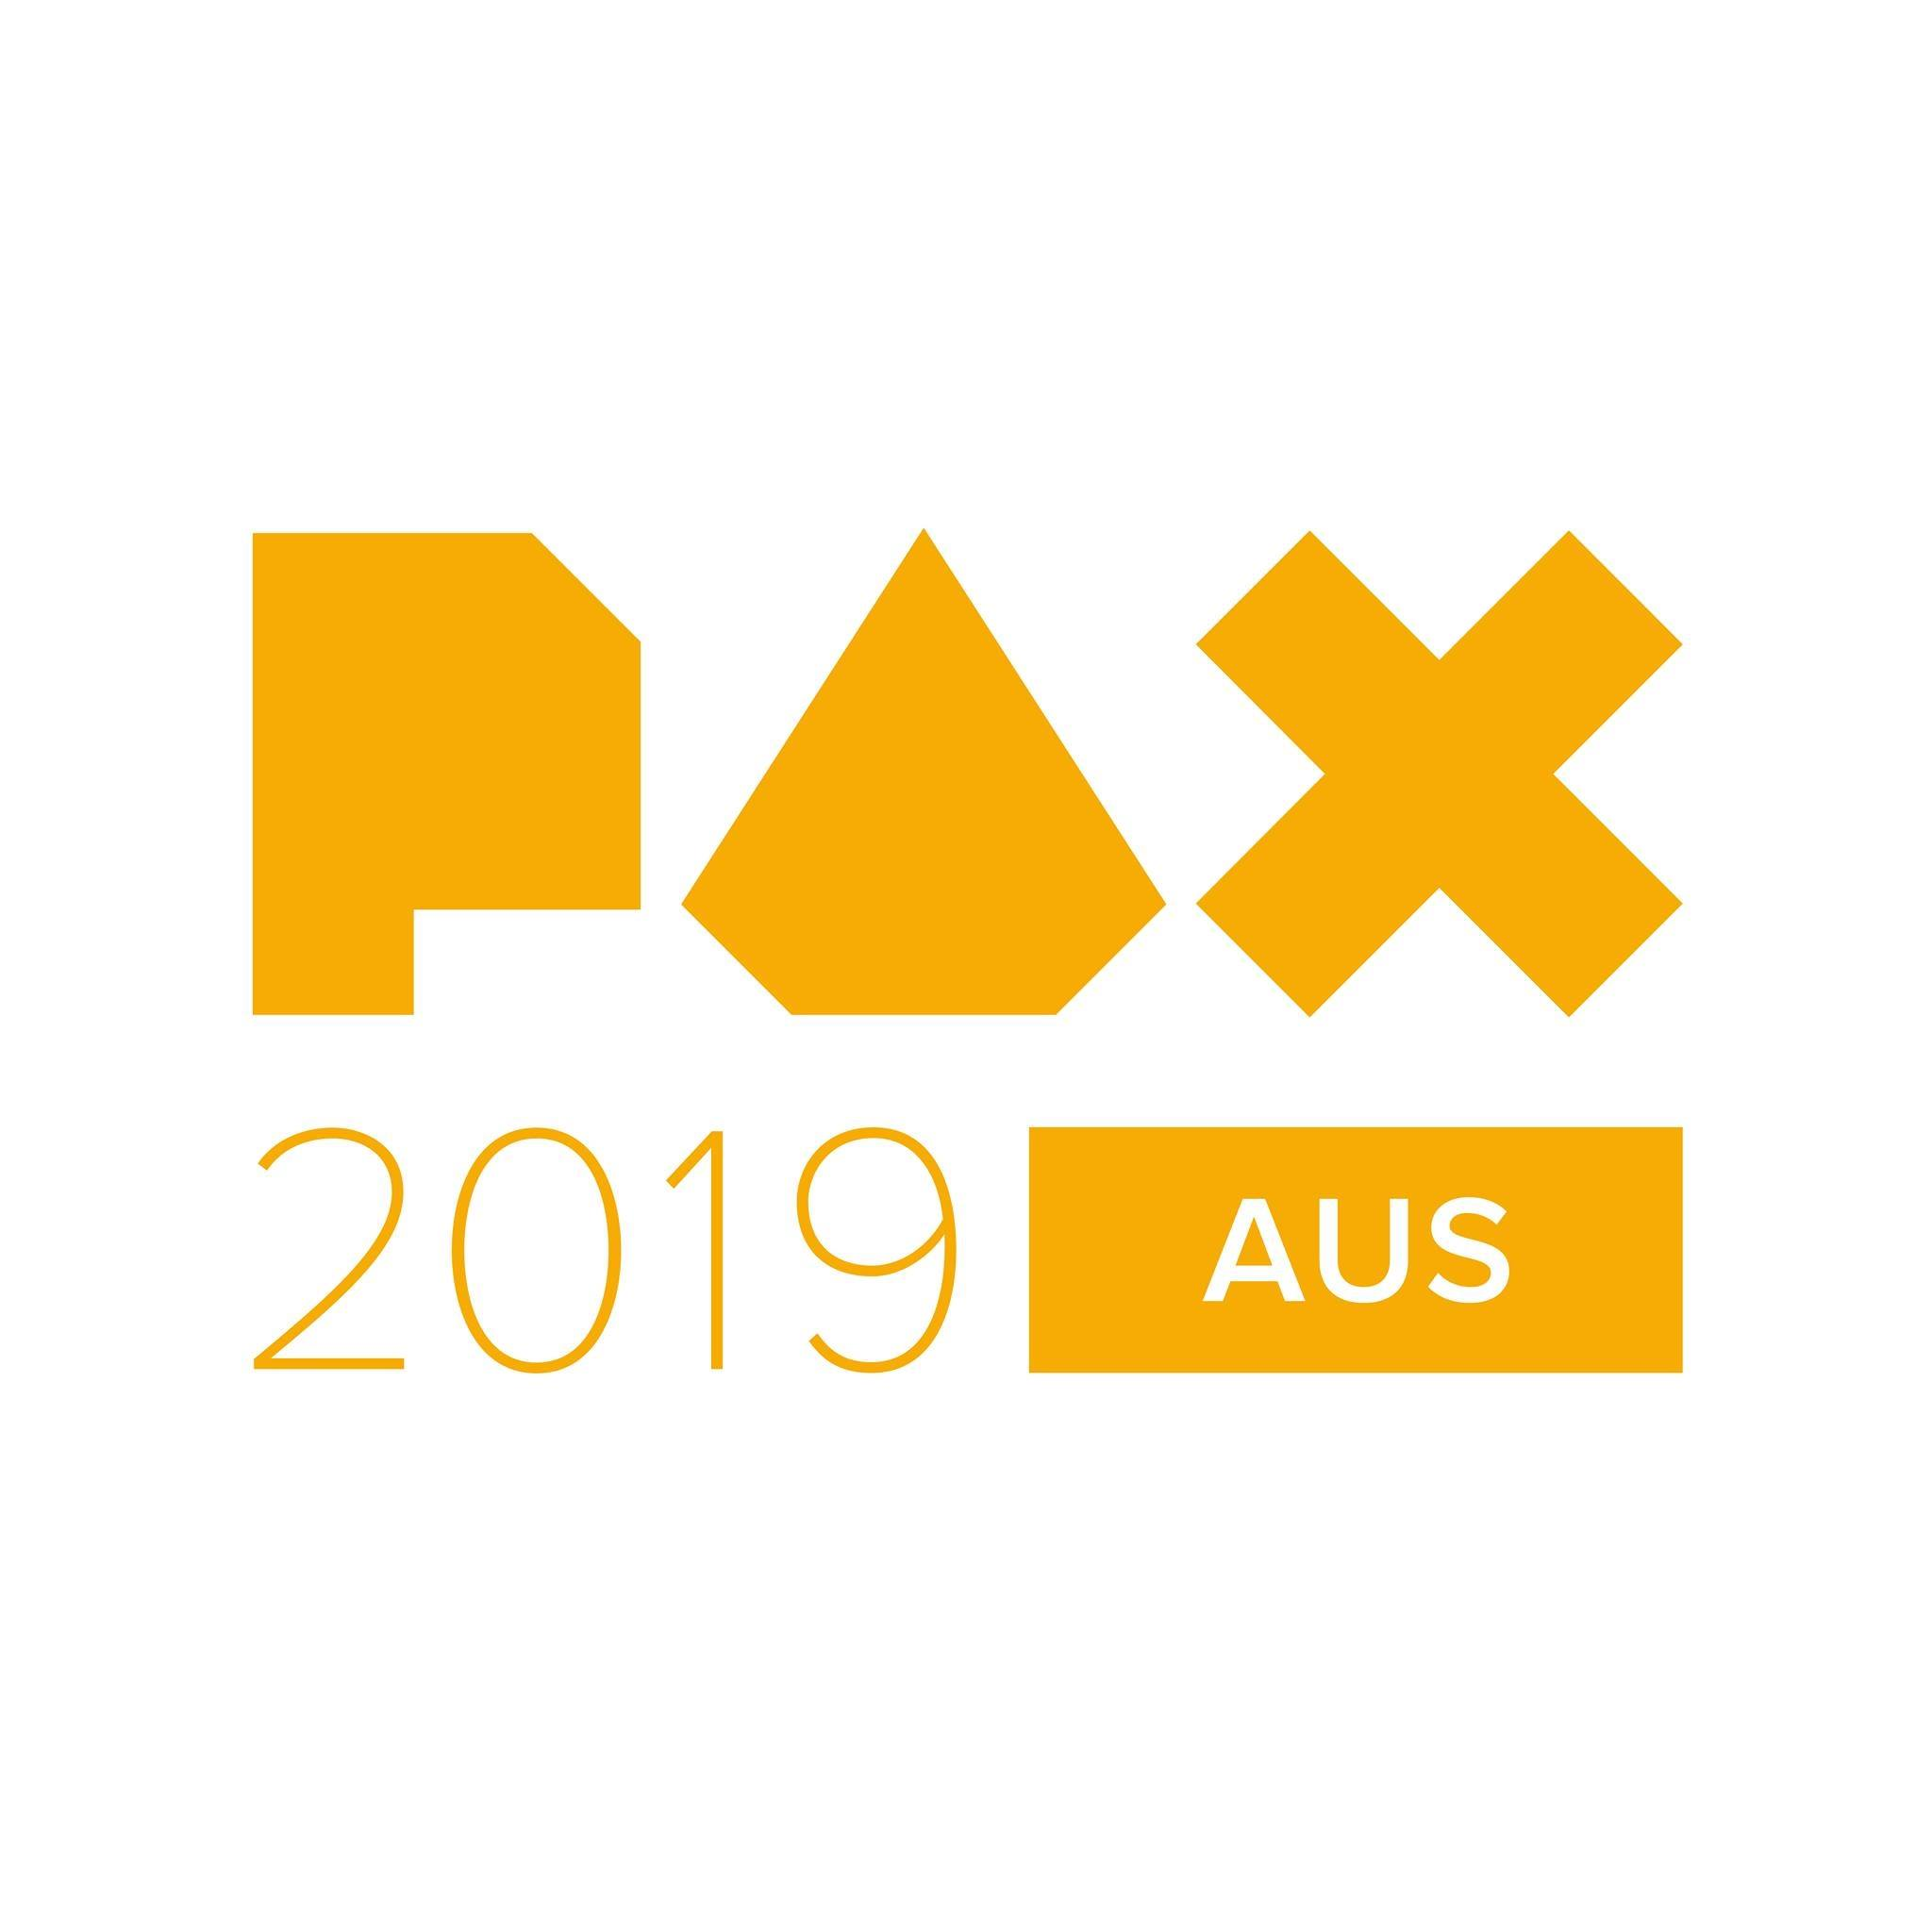 Vyxl work at PAX Aus, Melbourne Oct 11-13